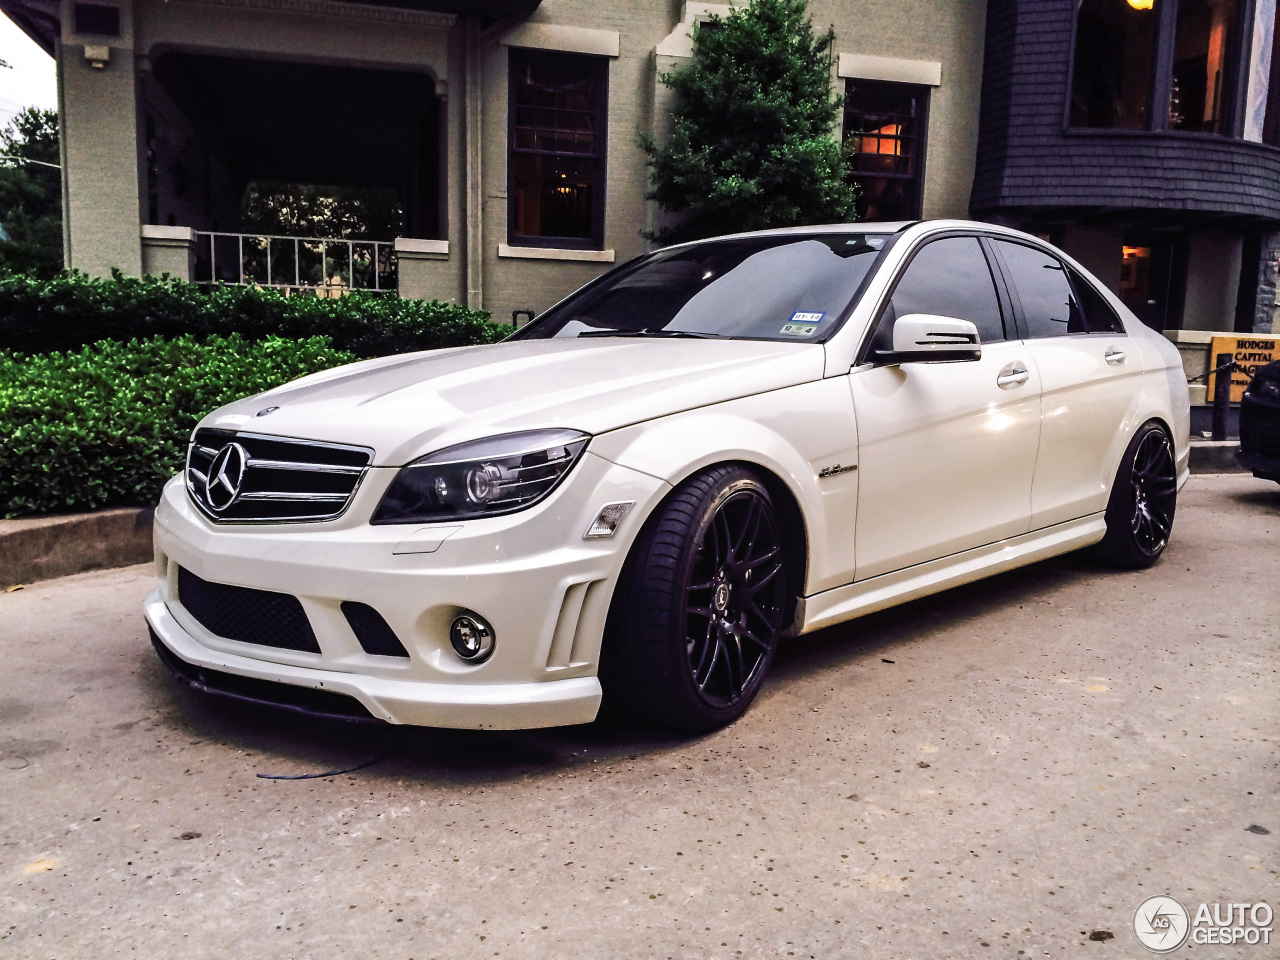 mercedes benz c 63 amg w204 9 july 2014 autogespot. Black Bedroom Furniture Sets. Home Design Ideas